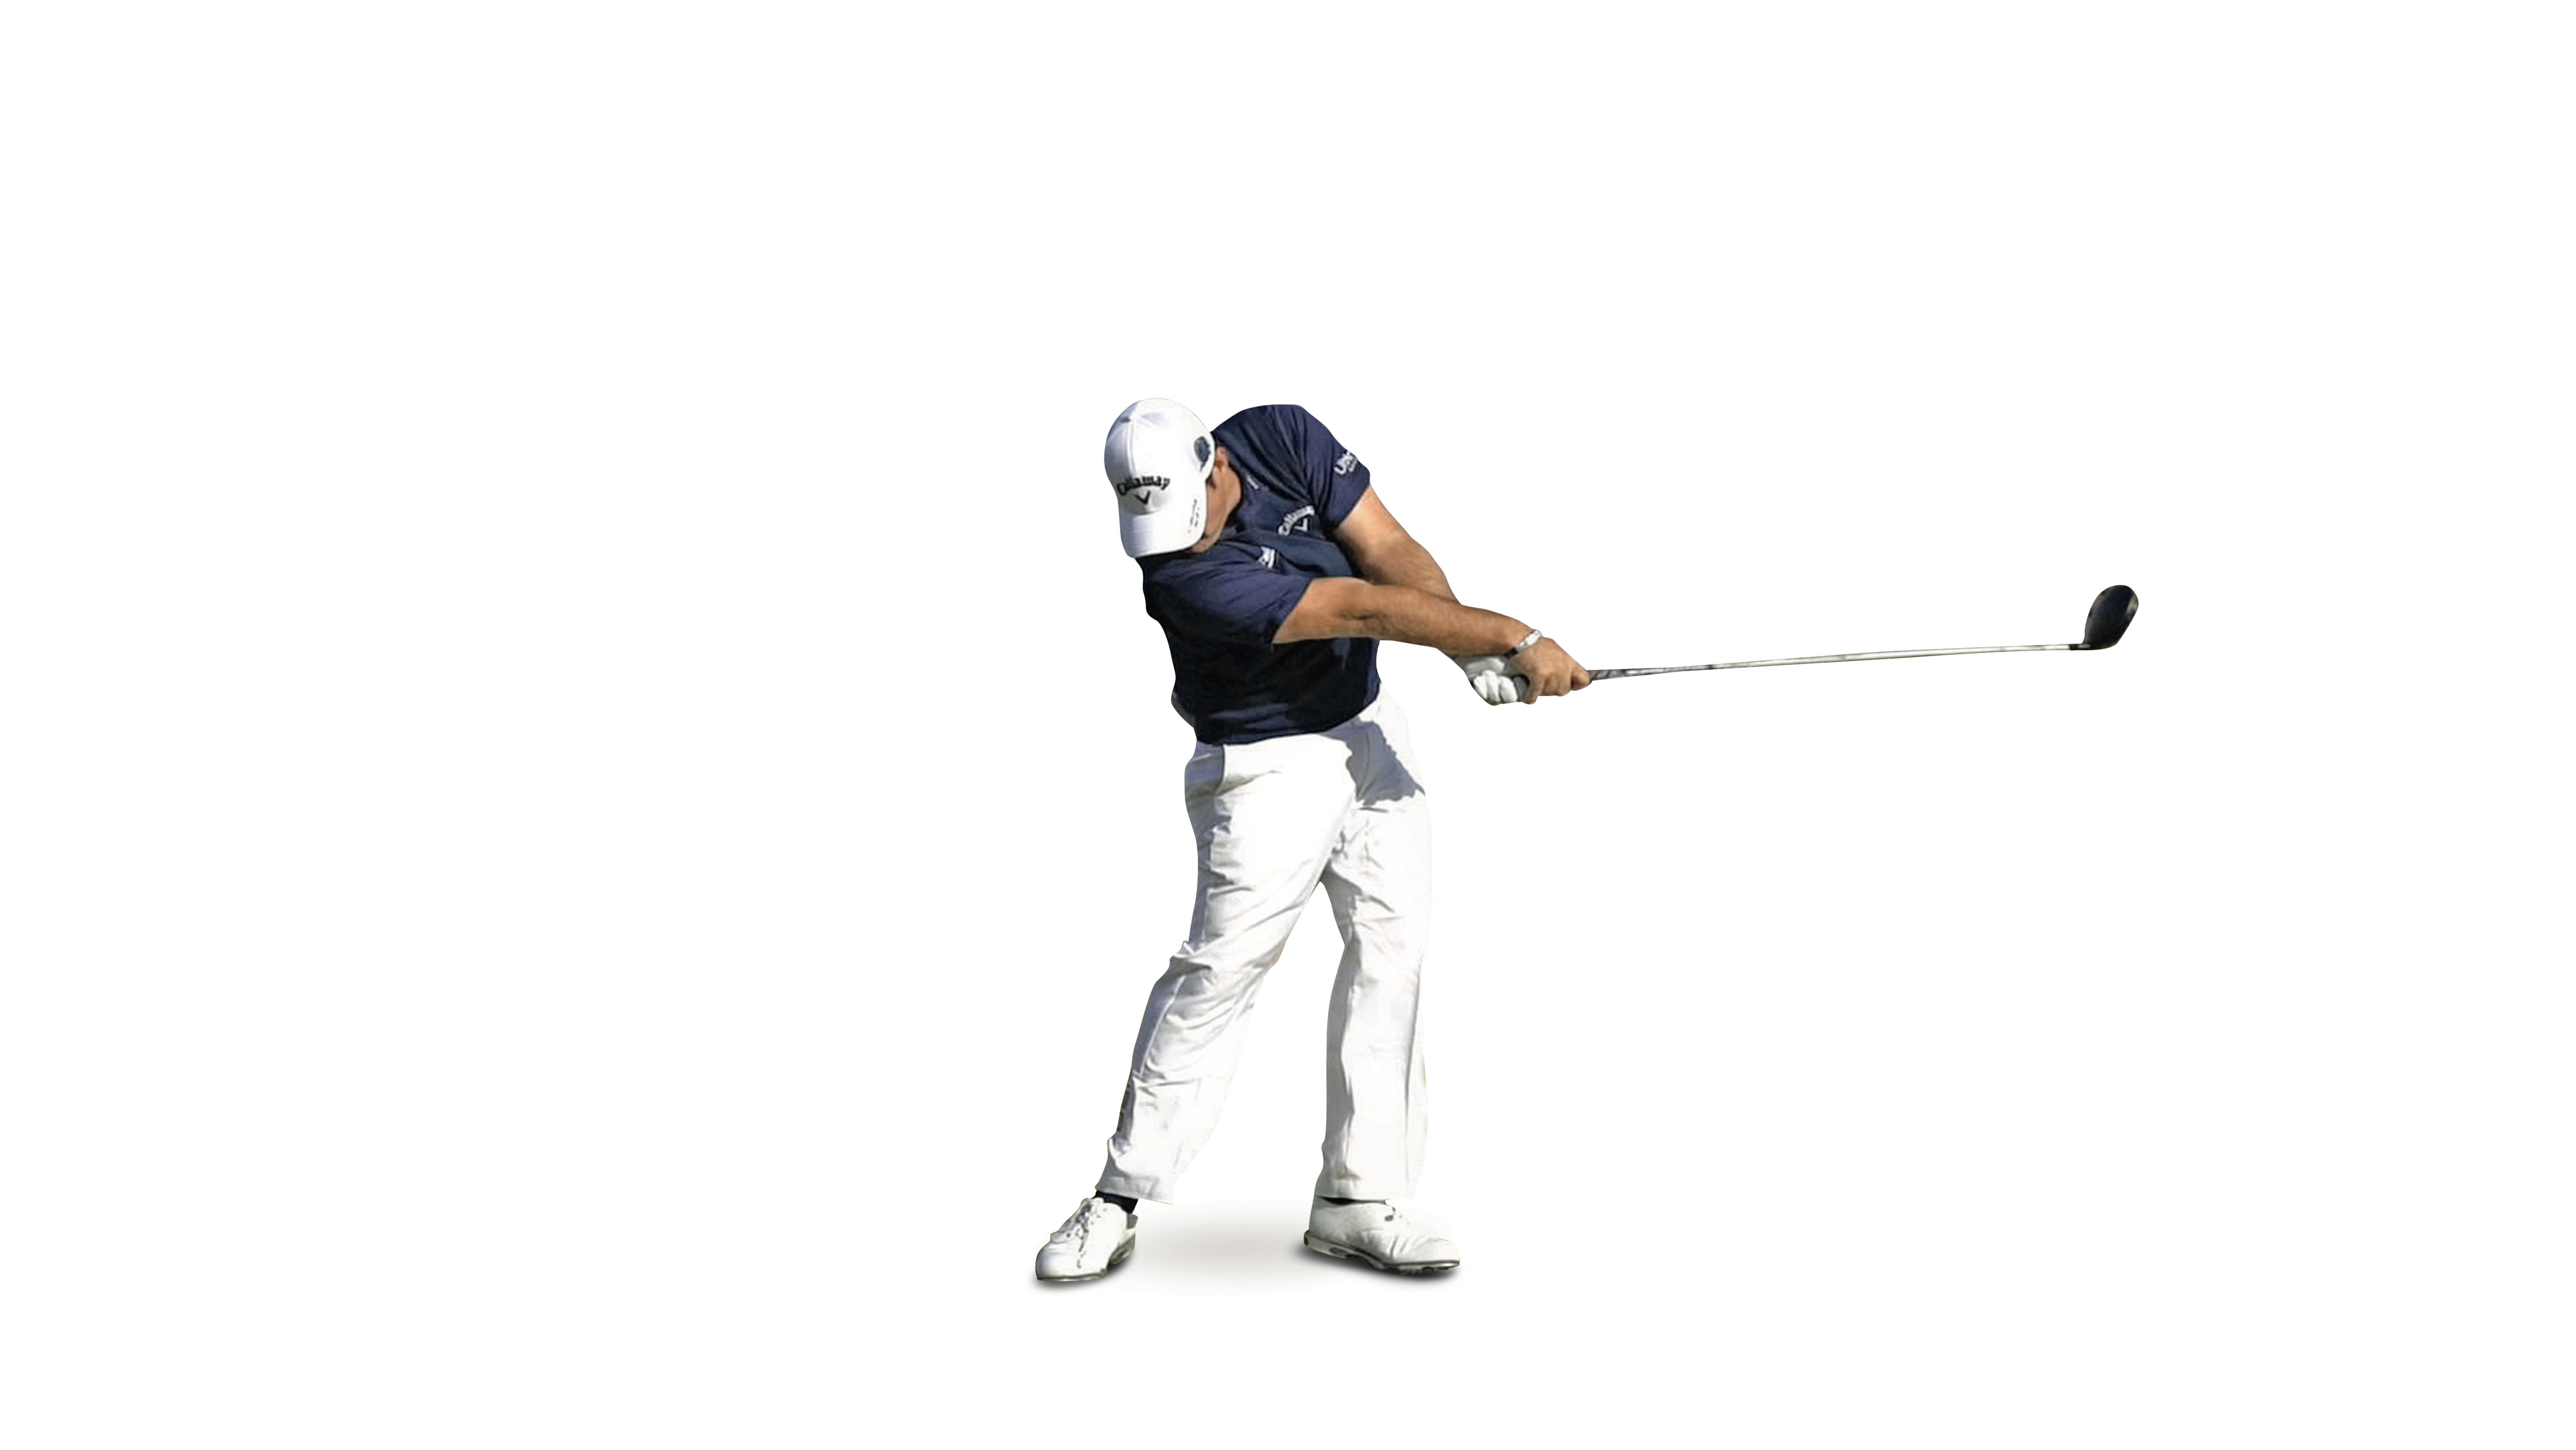 Patrick Reed releasong the club